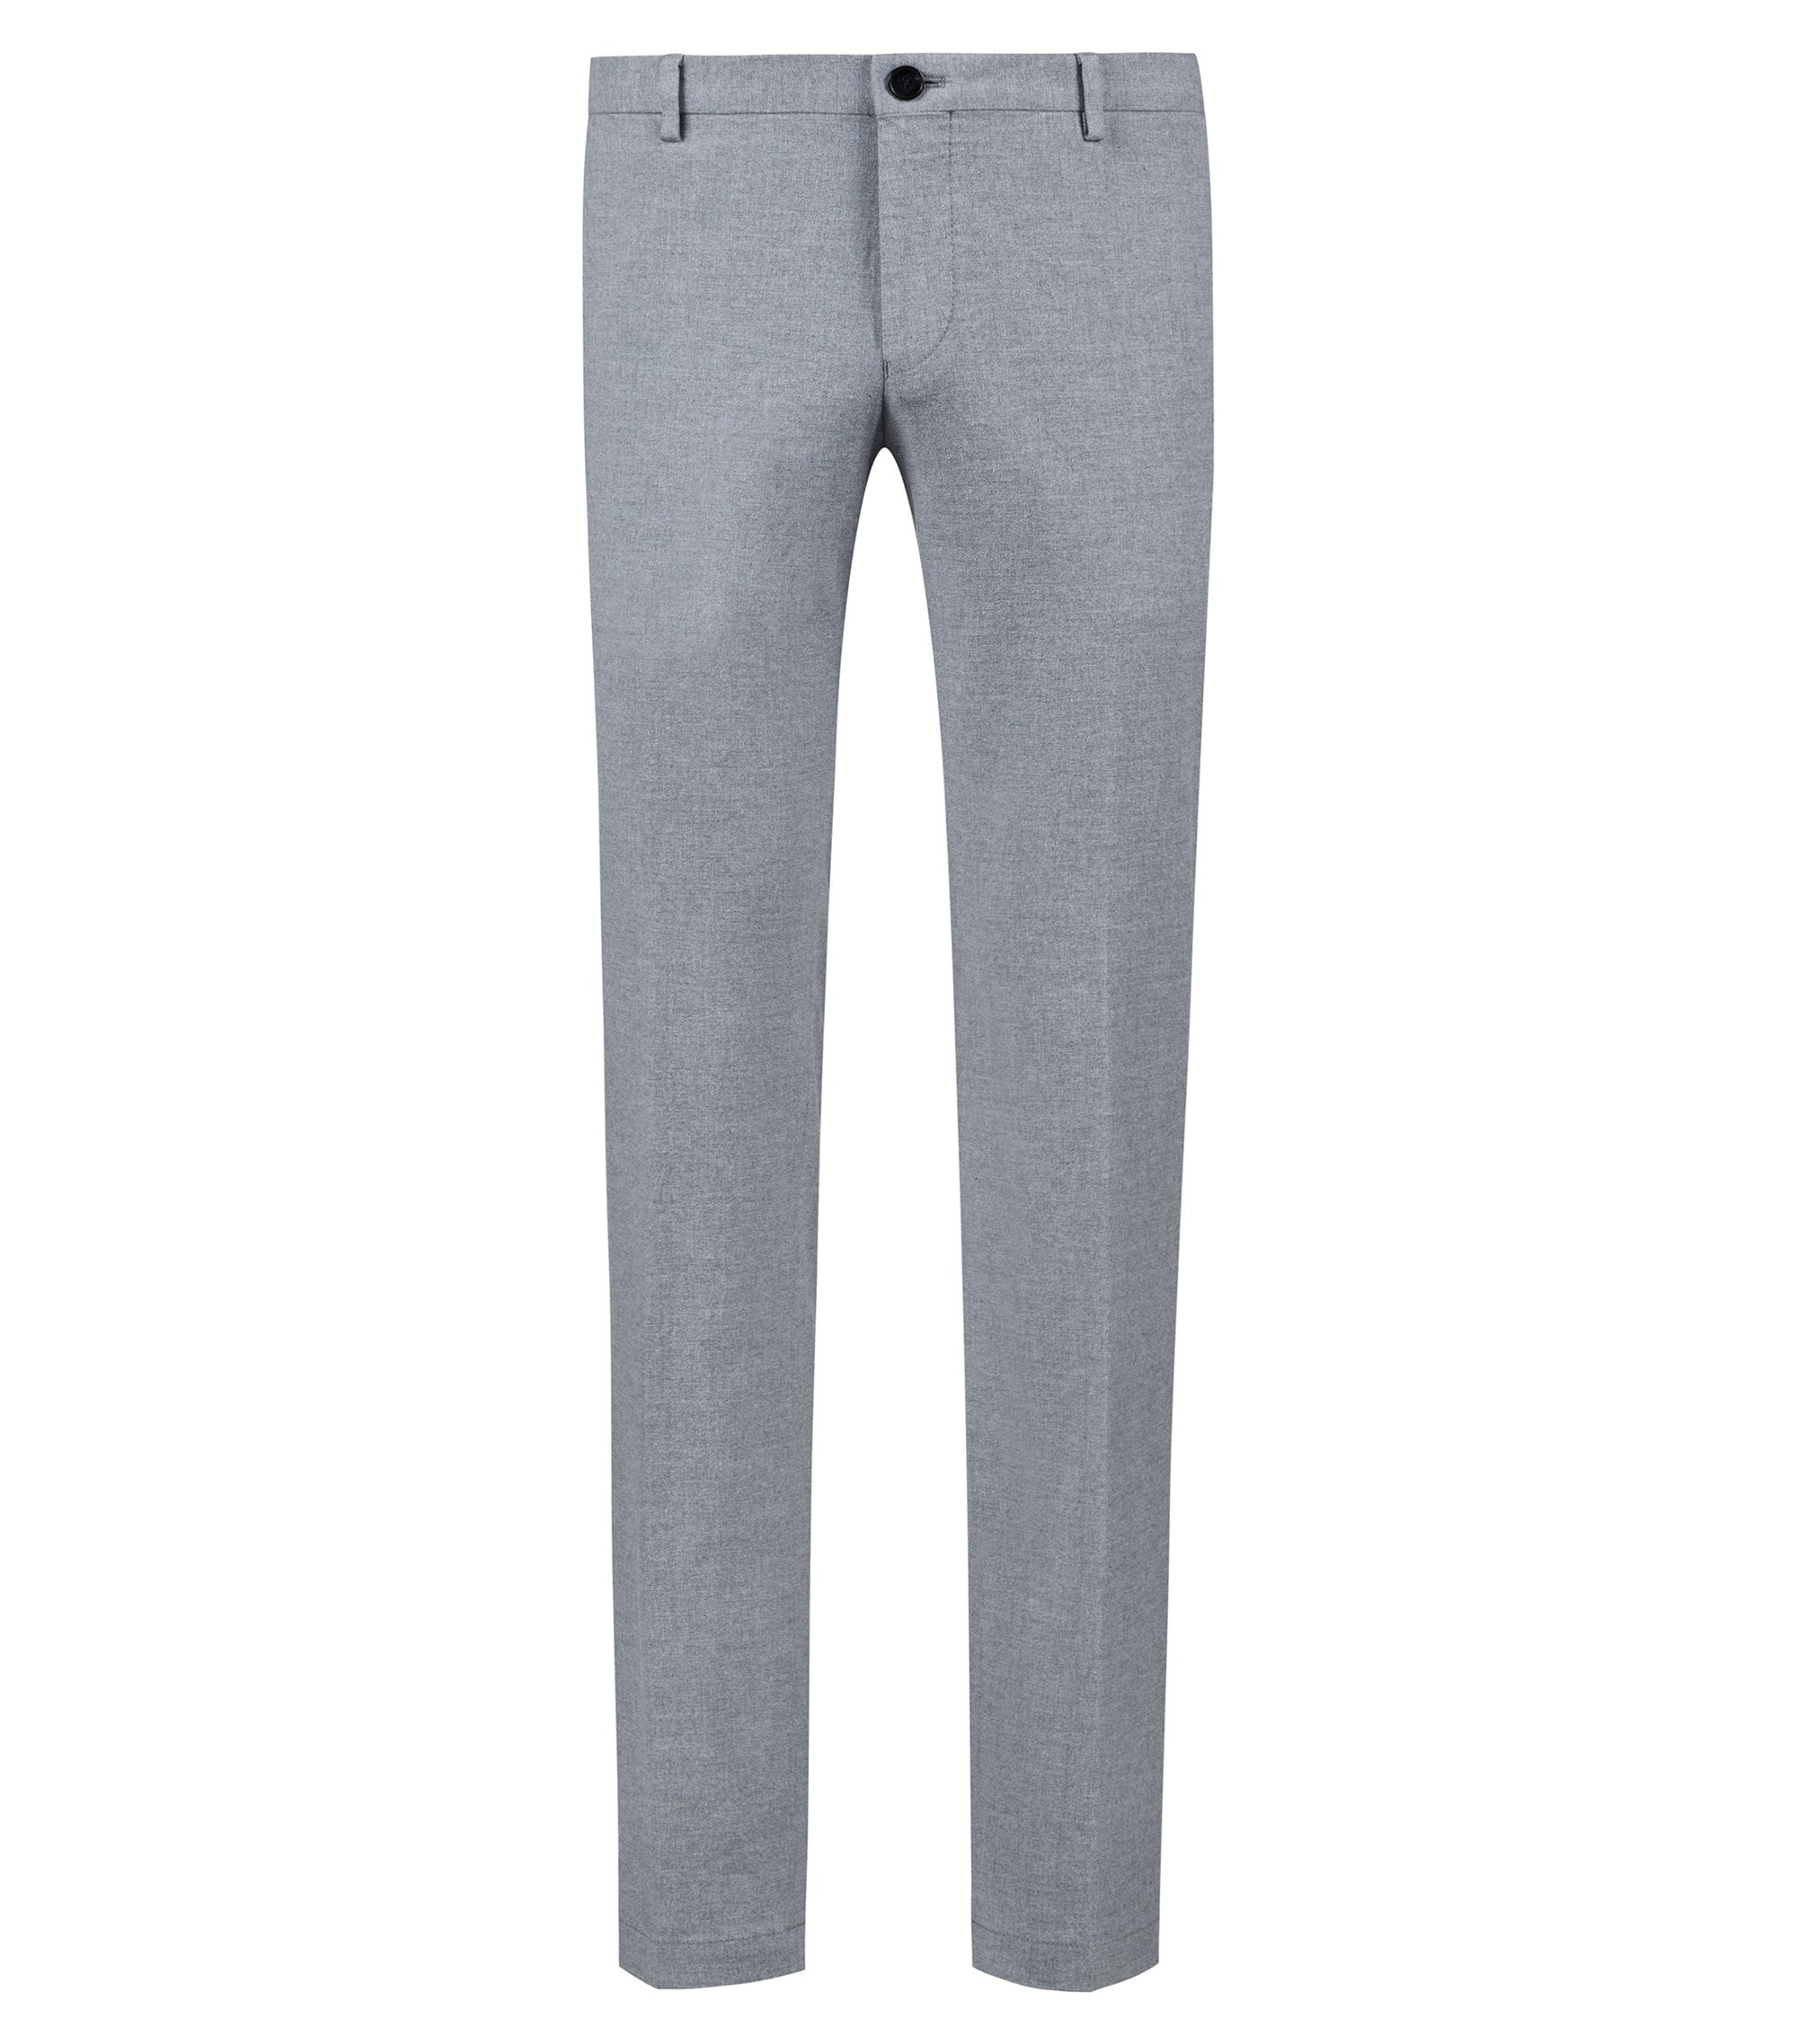 Pantalon Slim Fit en flanelle de coton stretch, Gris